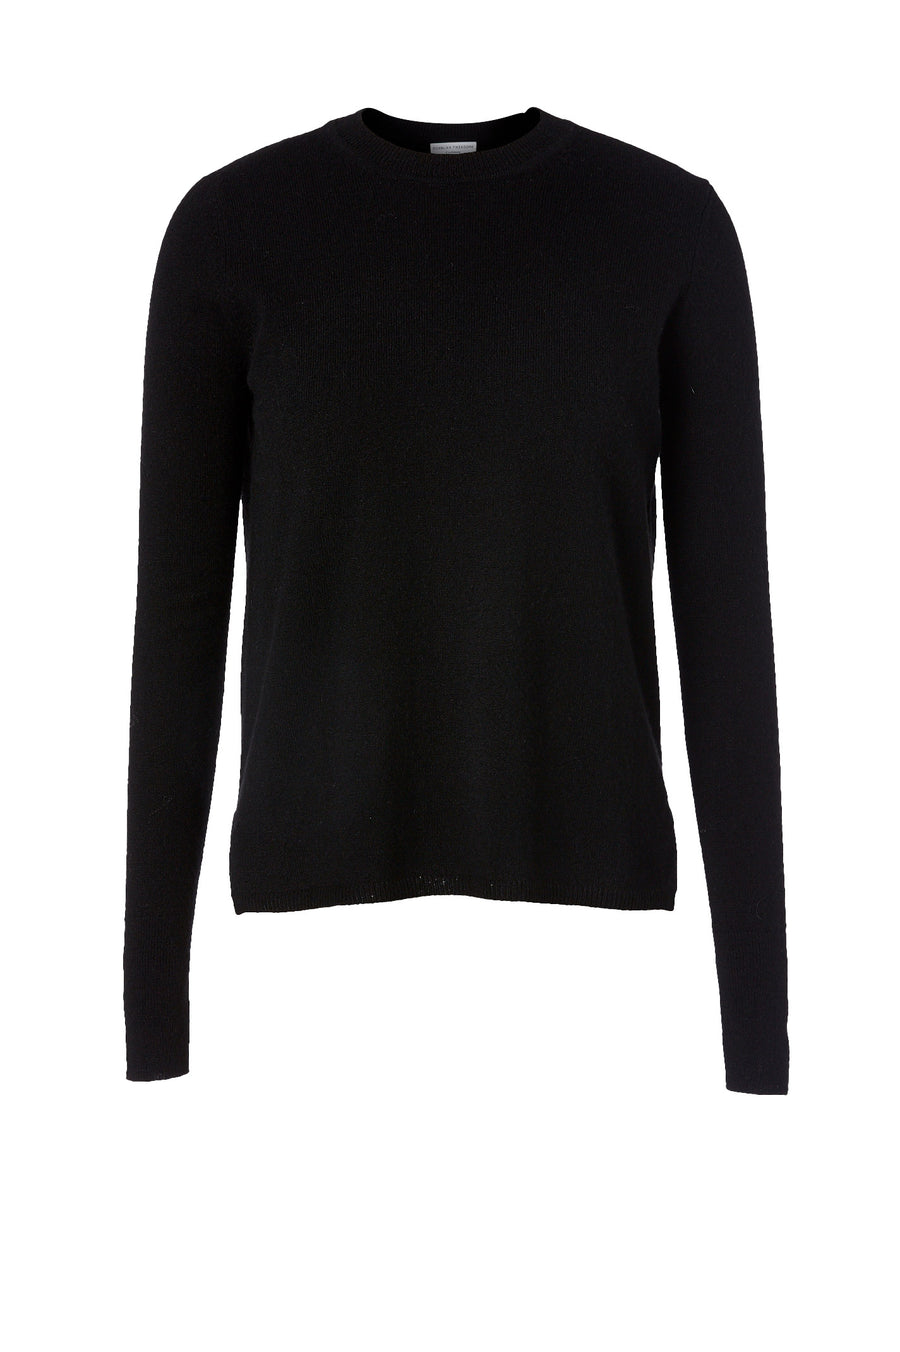 Embrace the cool with the Cashmere Crew Neck Sweater